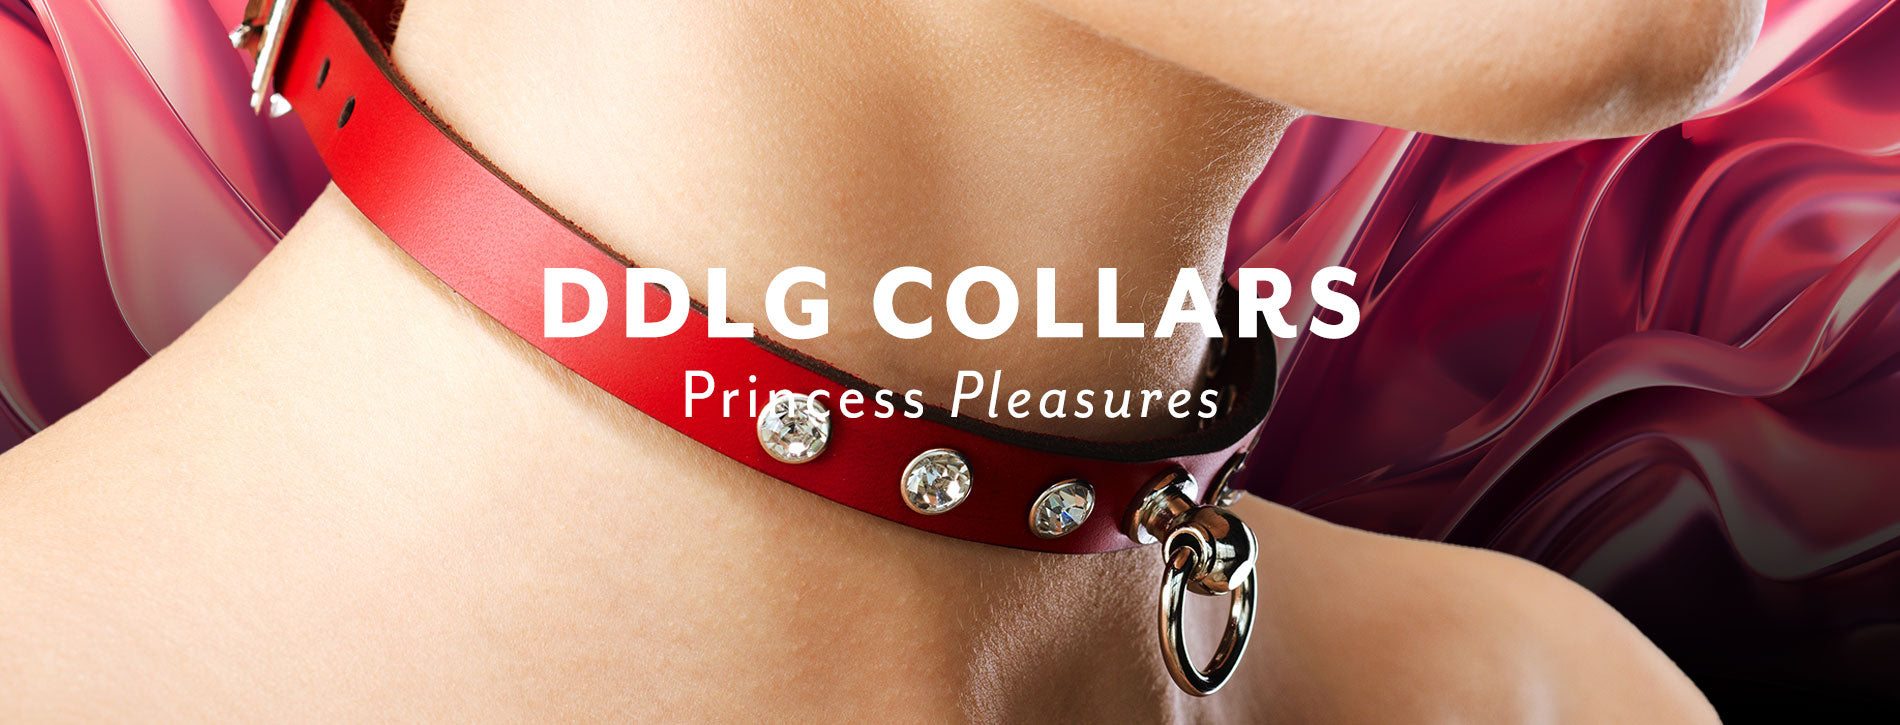 Luxury Leather DDLG Collars